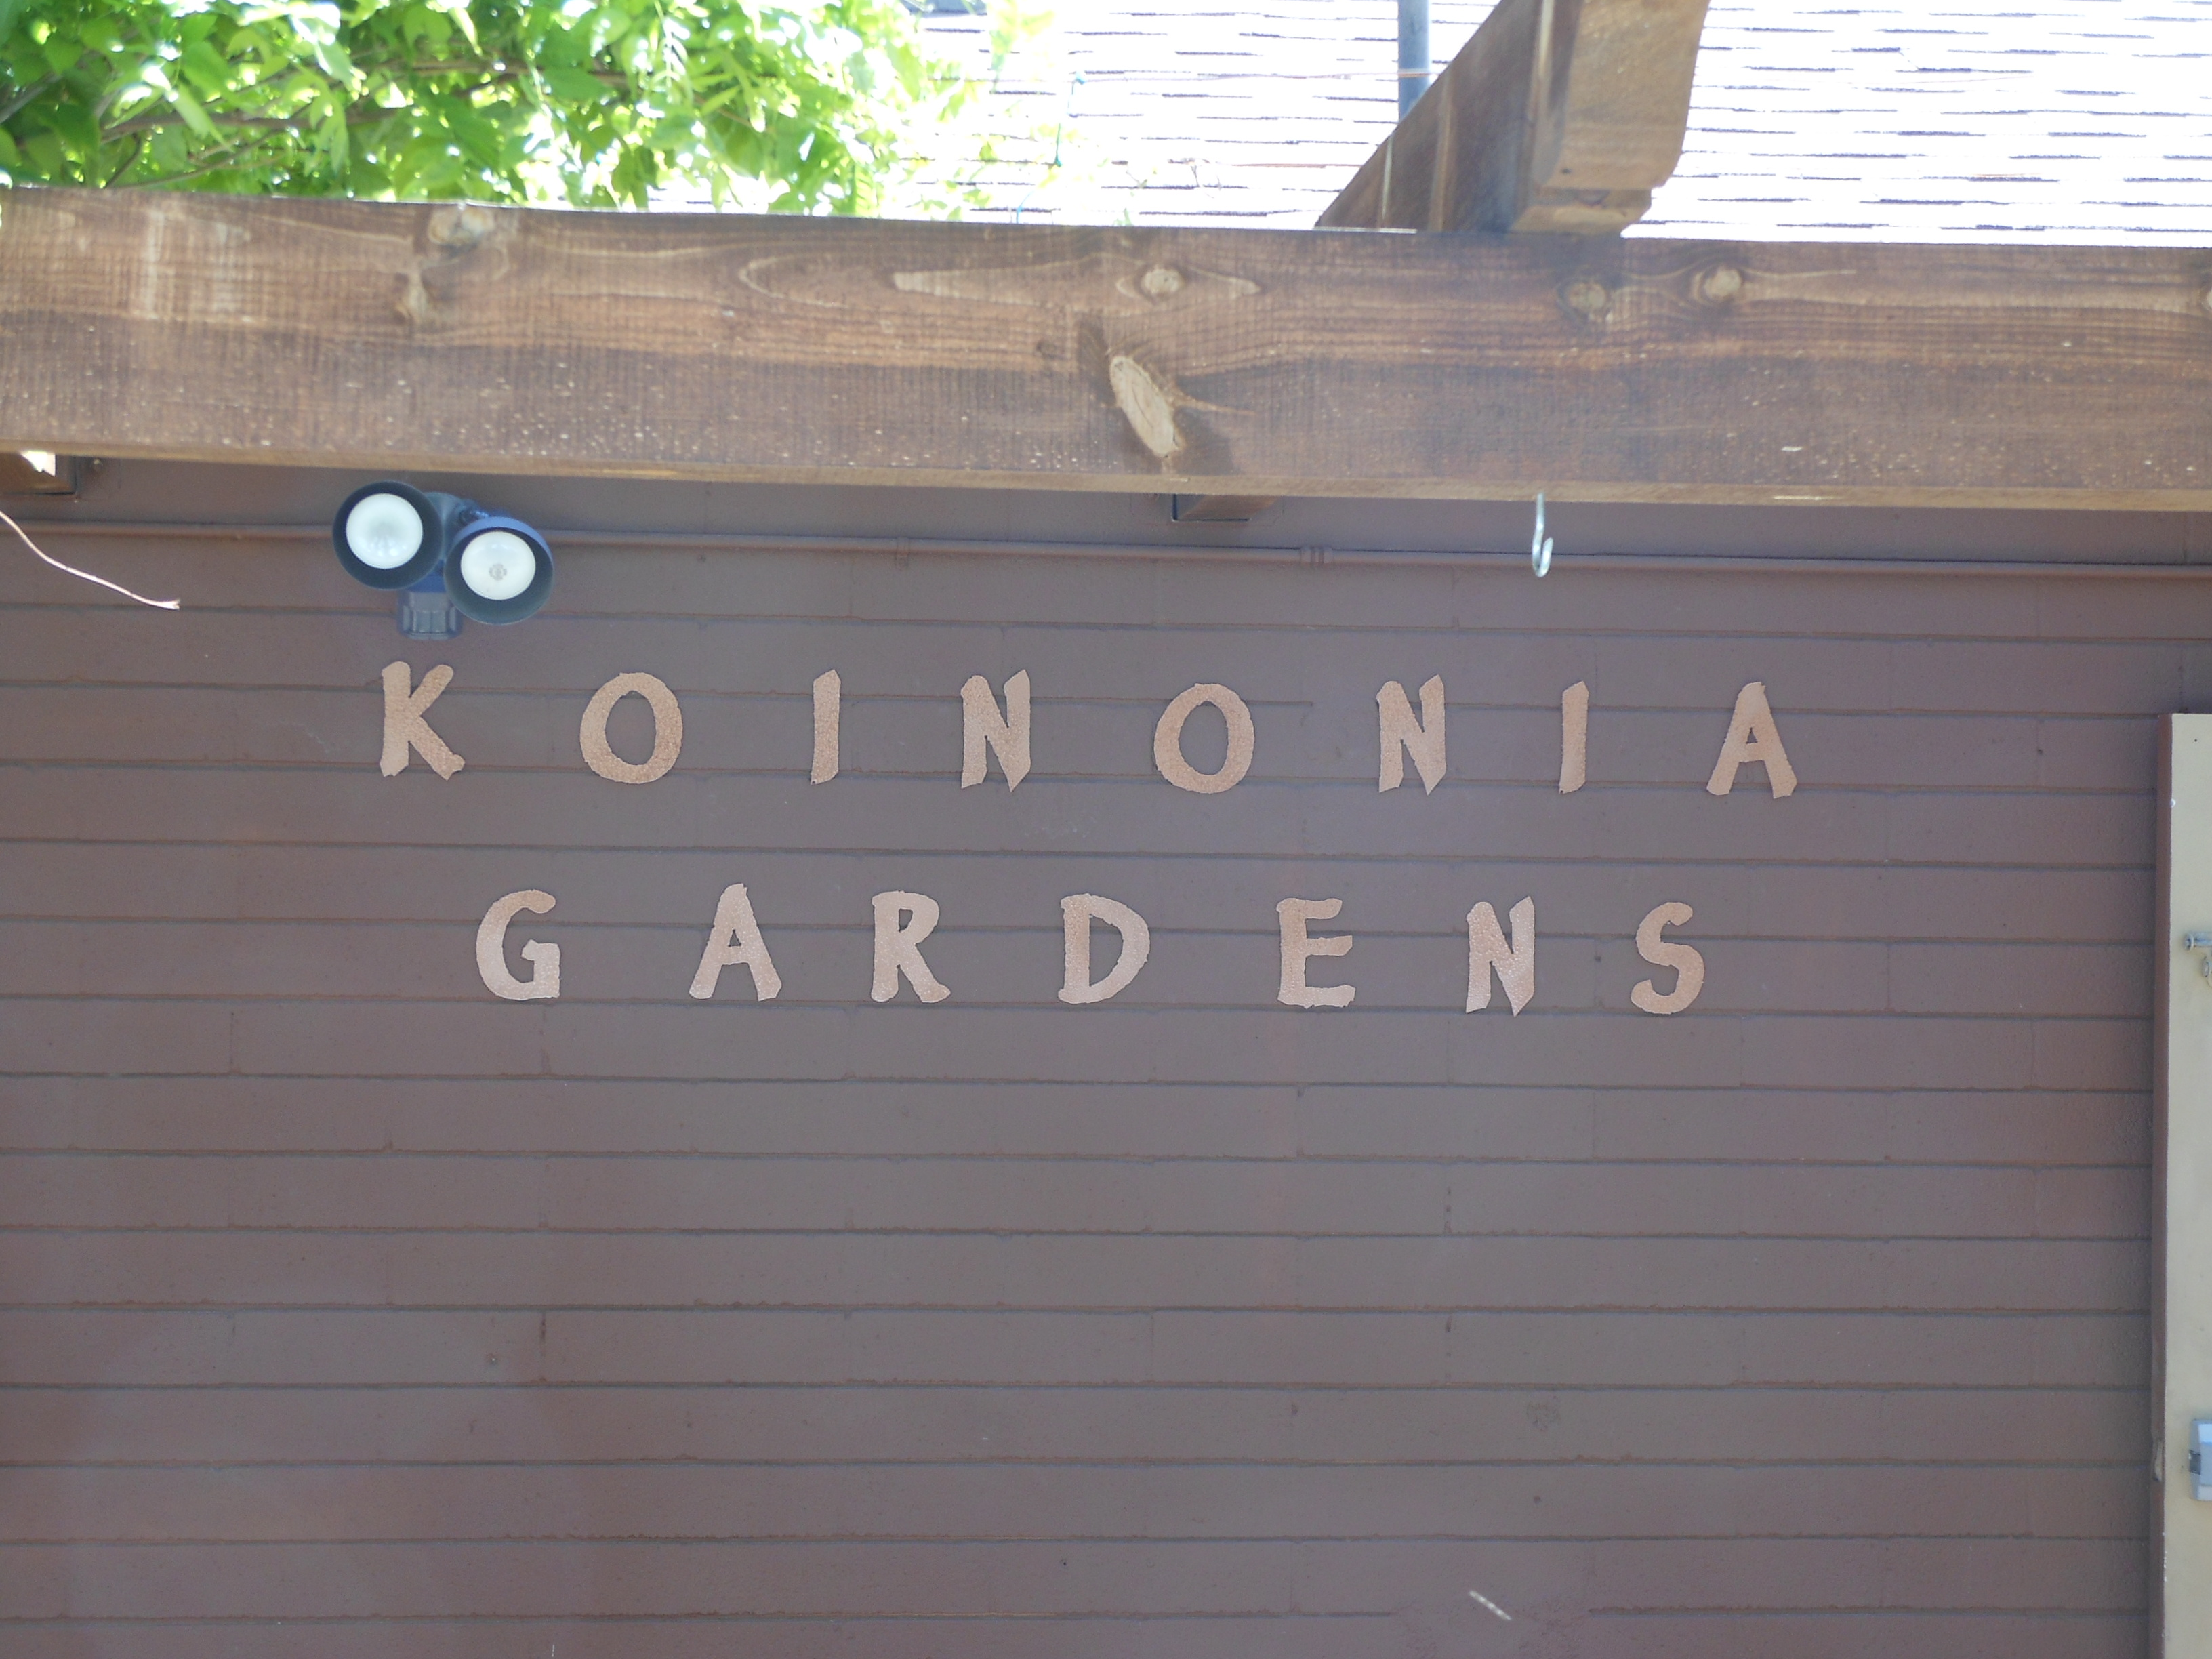 closeup of Koinonia gardens lettering